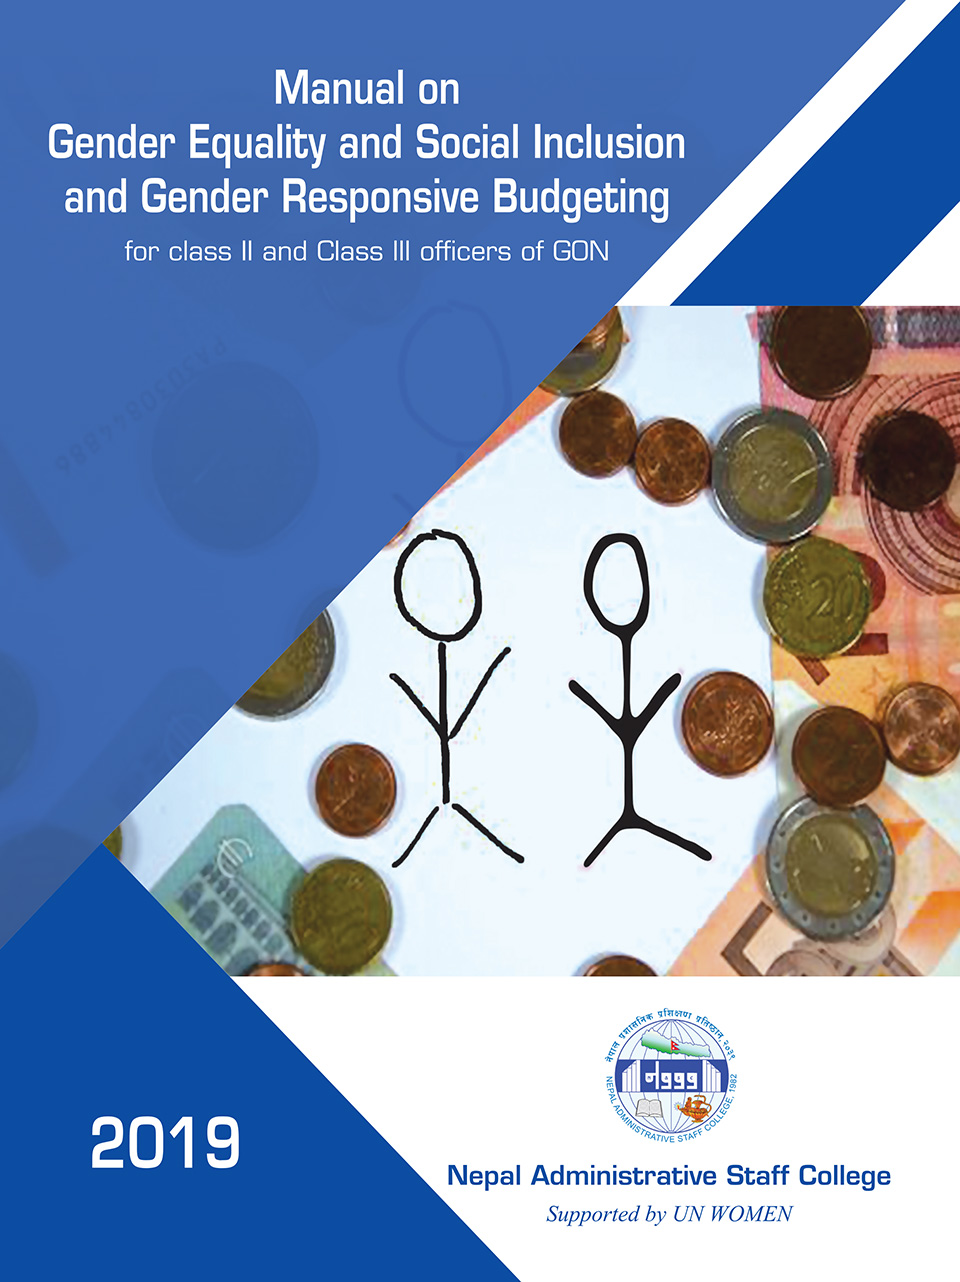 Manual on Gender Equality and Social Inclusion and Gender Responsive Budgeting